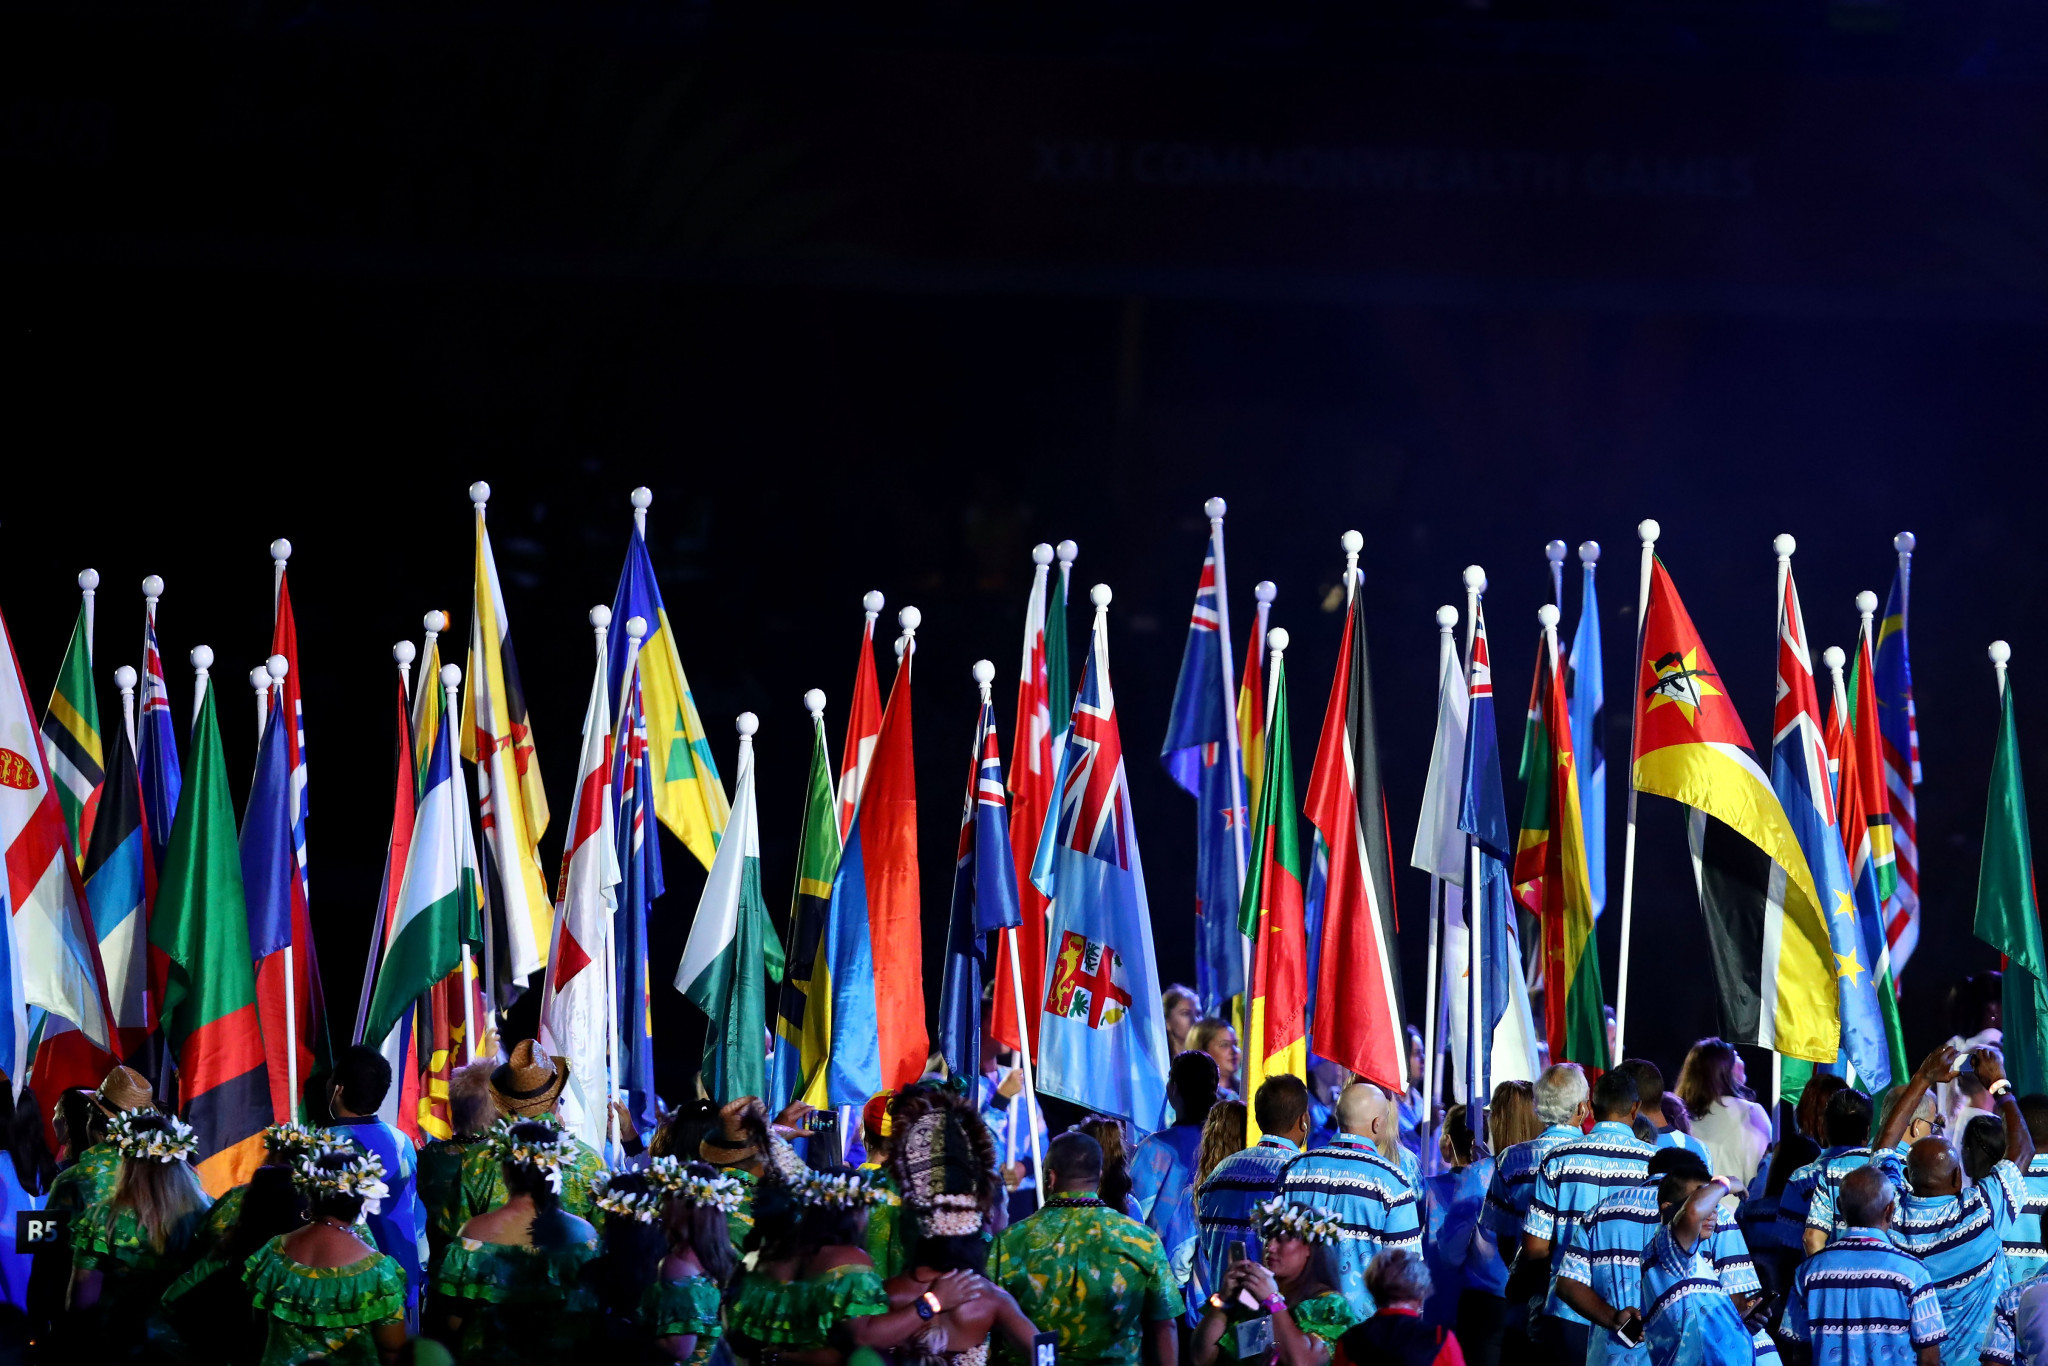 Flags of competing countries are seen during the Opening Ceremony for the Gold Coast 2018 Games ©Getty Images